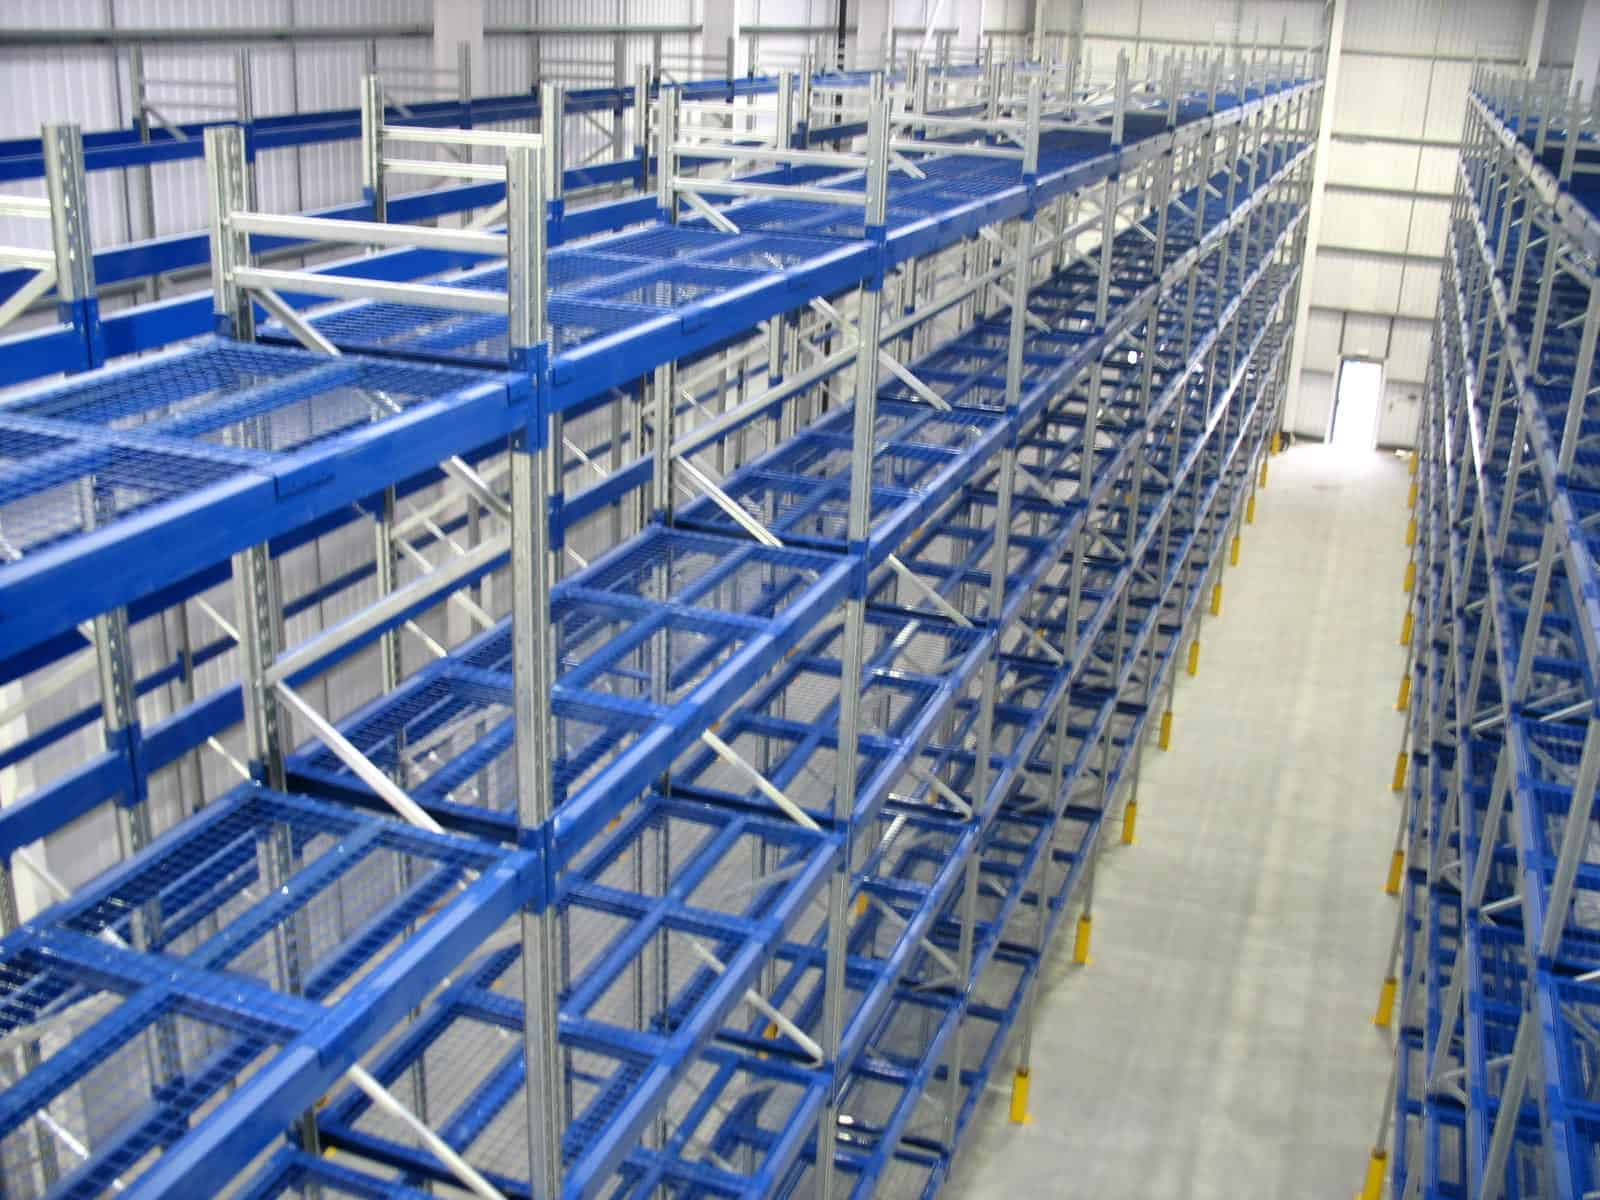 Hardwood Flooring packs can be easily accessed when stored on Stakrak SR2000 Series Pallet Racking